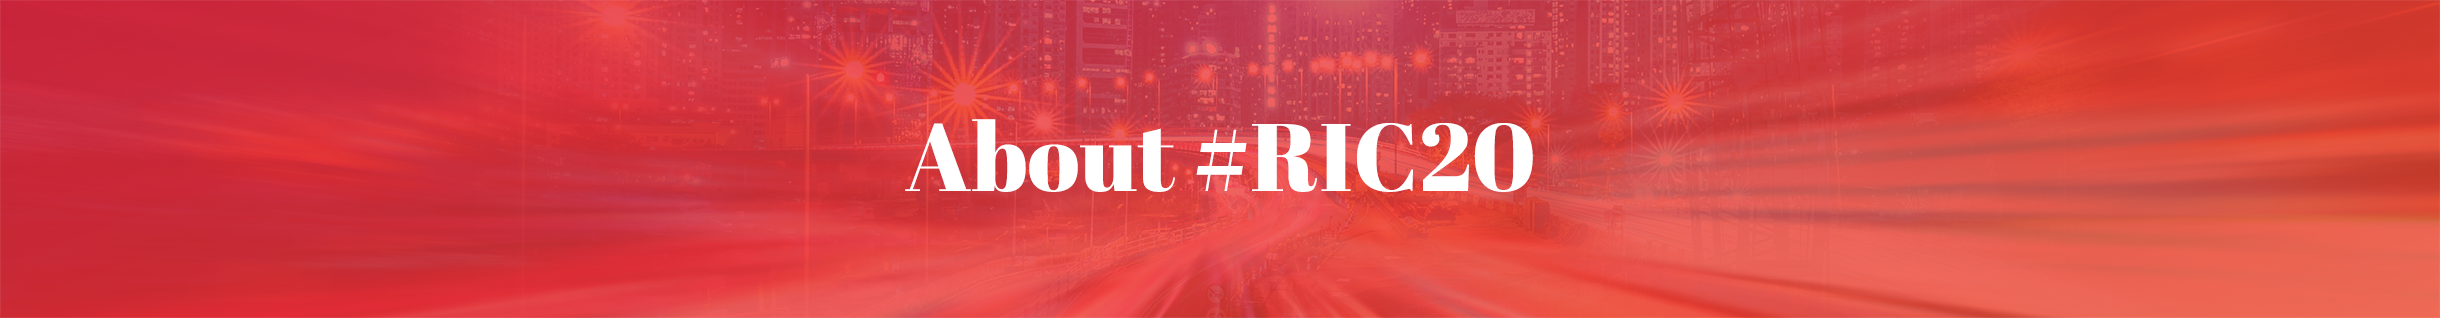 About #RIC20